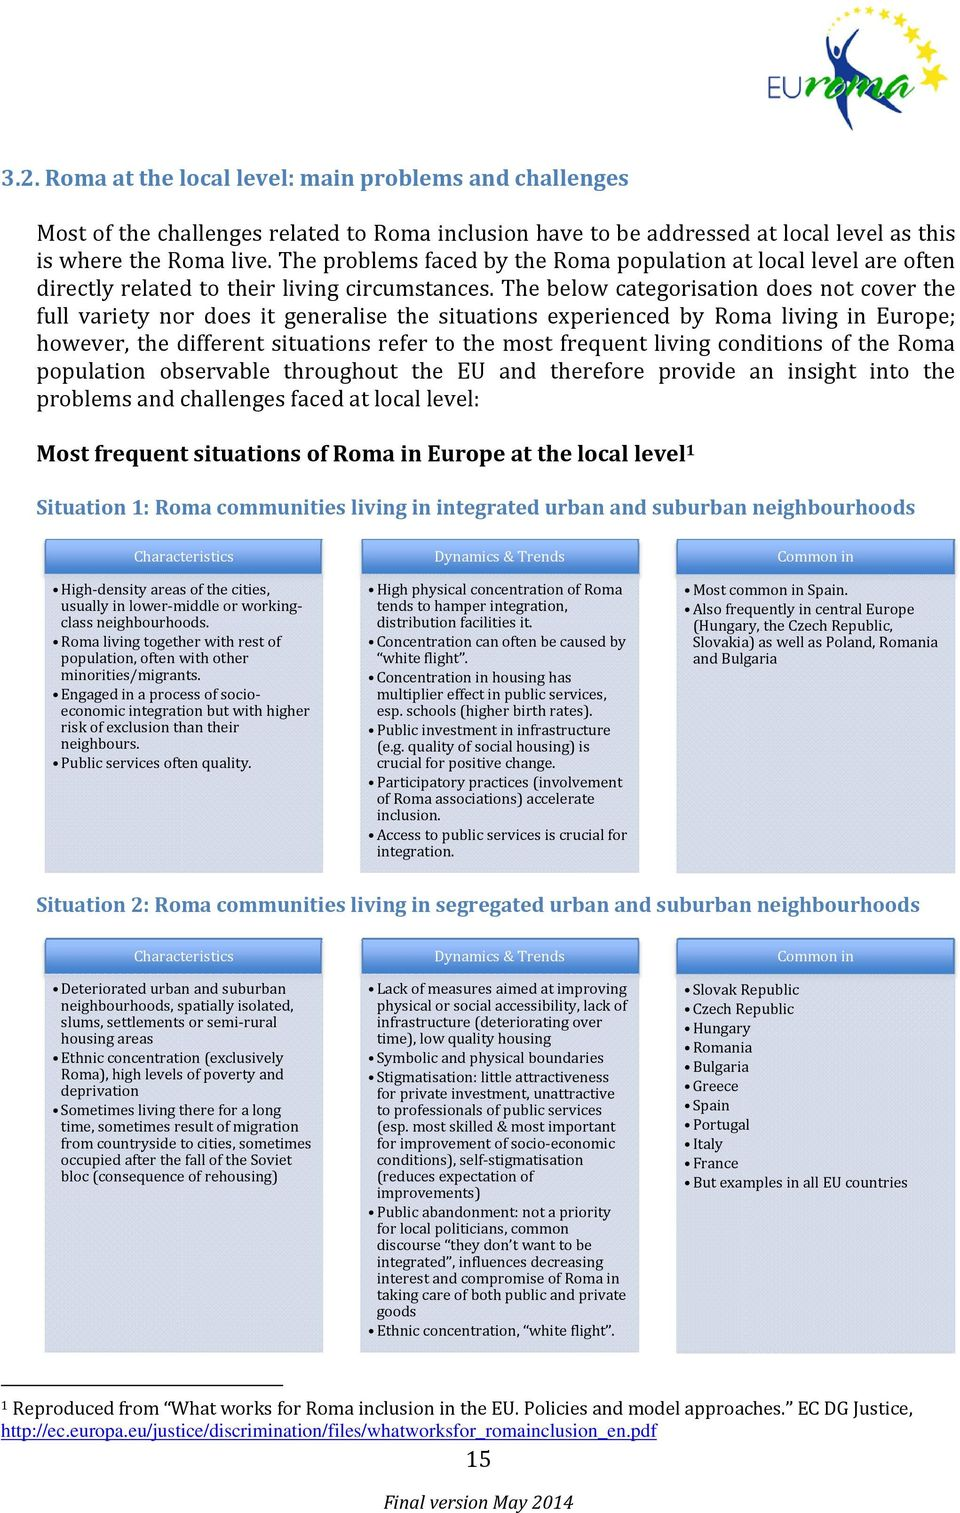 The below categorisation does not cover the full variety nor does it generalise the situations experienced by Roma living in Europe; however, the different situations refer to the most frequent